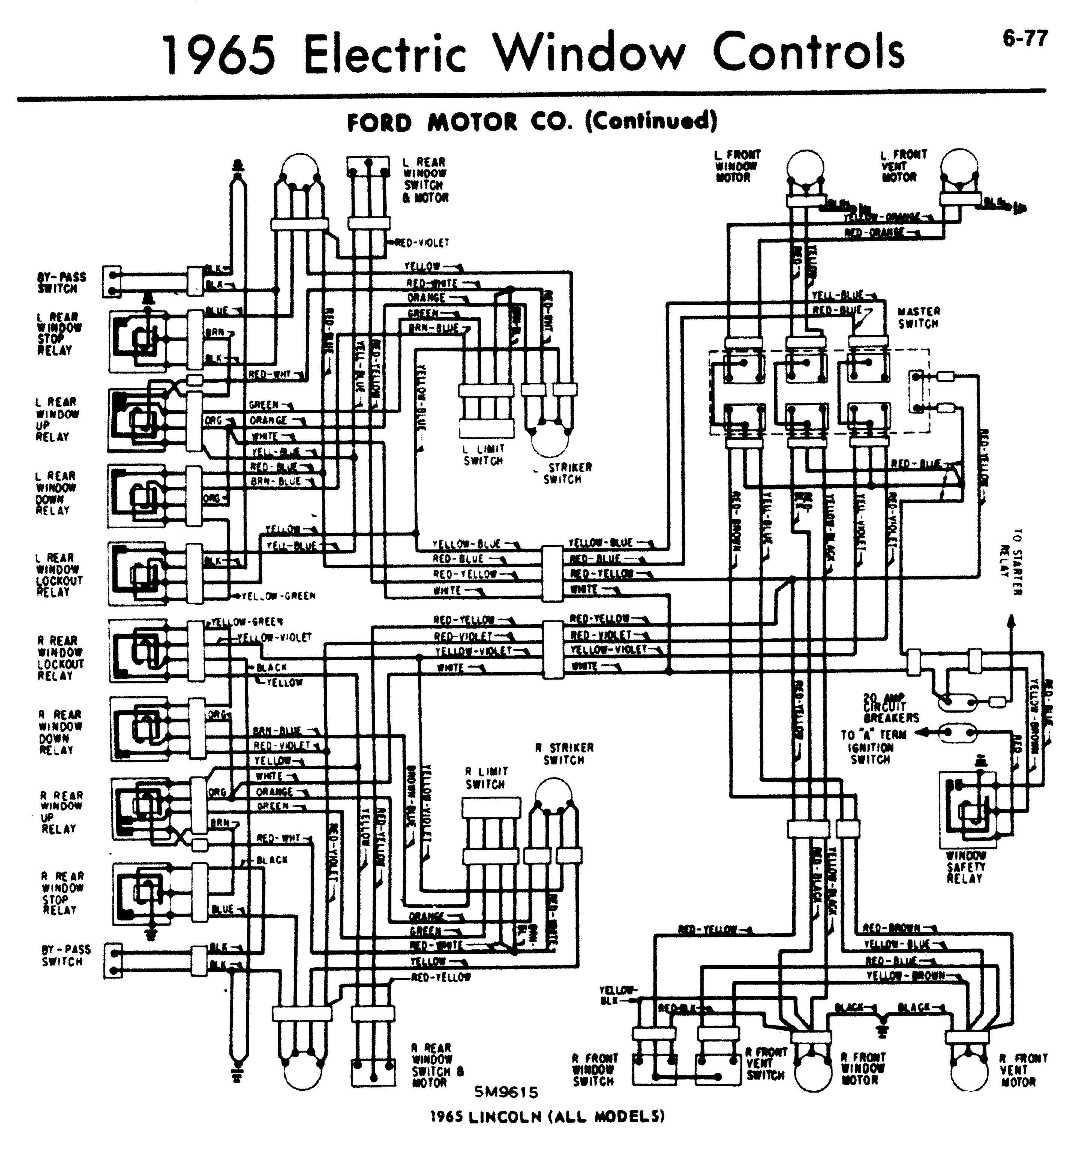 1965 Thunderbird Power Window Wiring Diagram Complete Ford 1966 1955 Rh Recored Co 1956